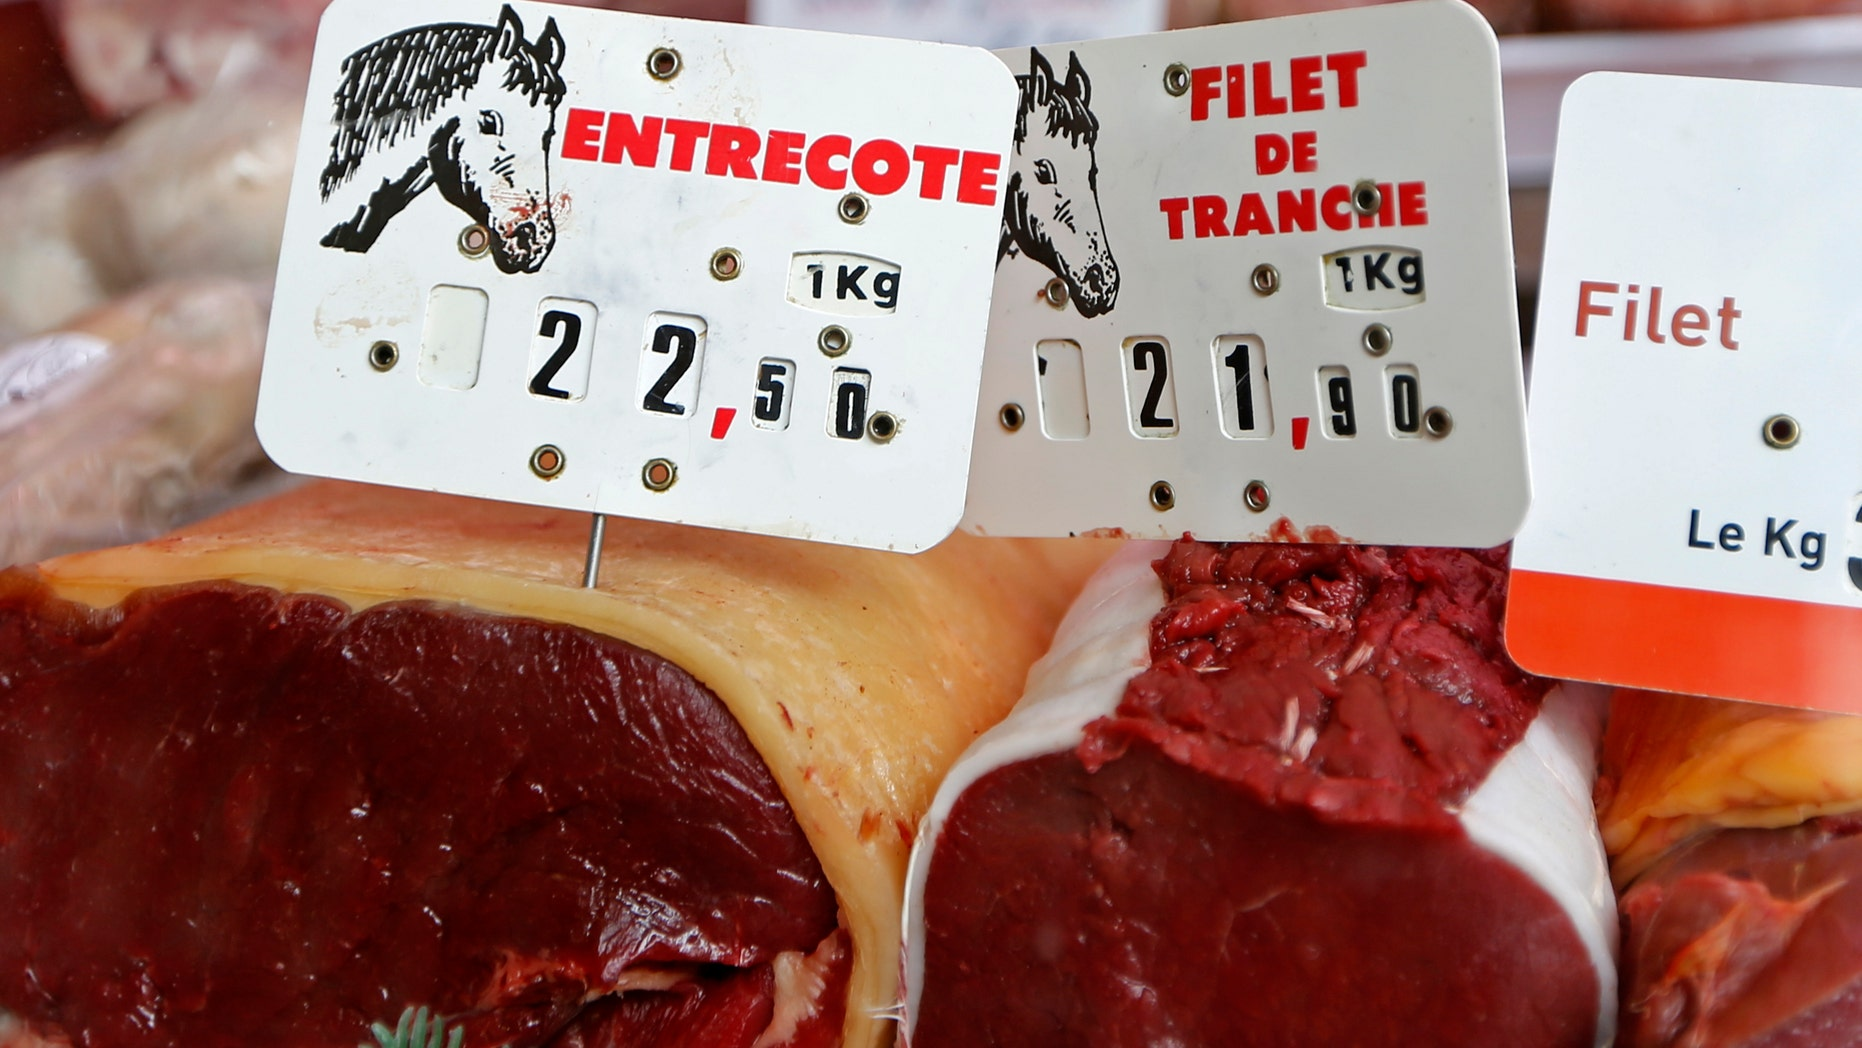 Cuts of horsemeat are displayed in a shop window at the horse butchery near Paris.